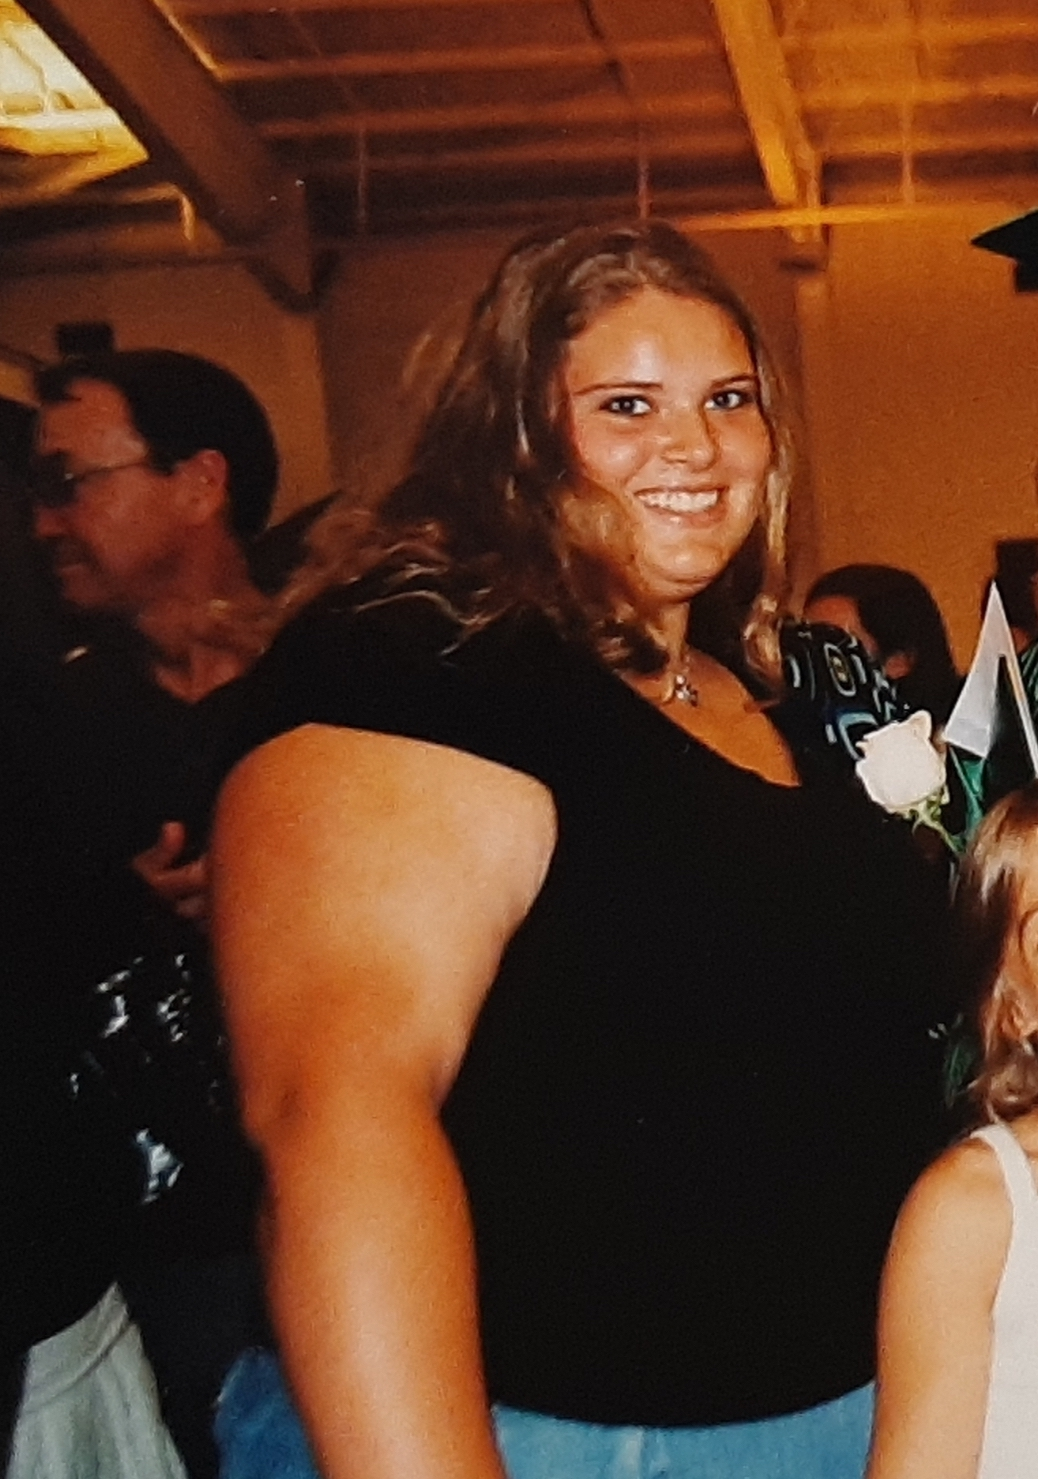 420lb Woman Who Lost 240lb in 17 Months Is Now an Accountability Coach Helping Others